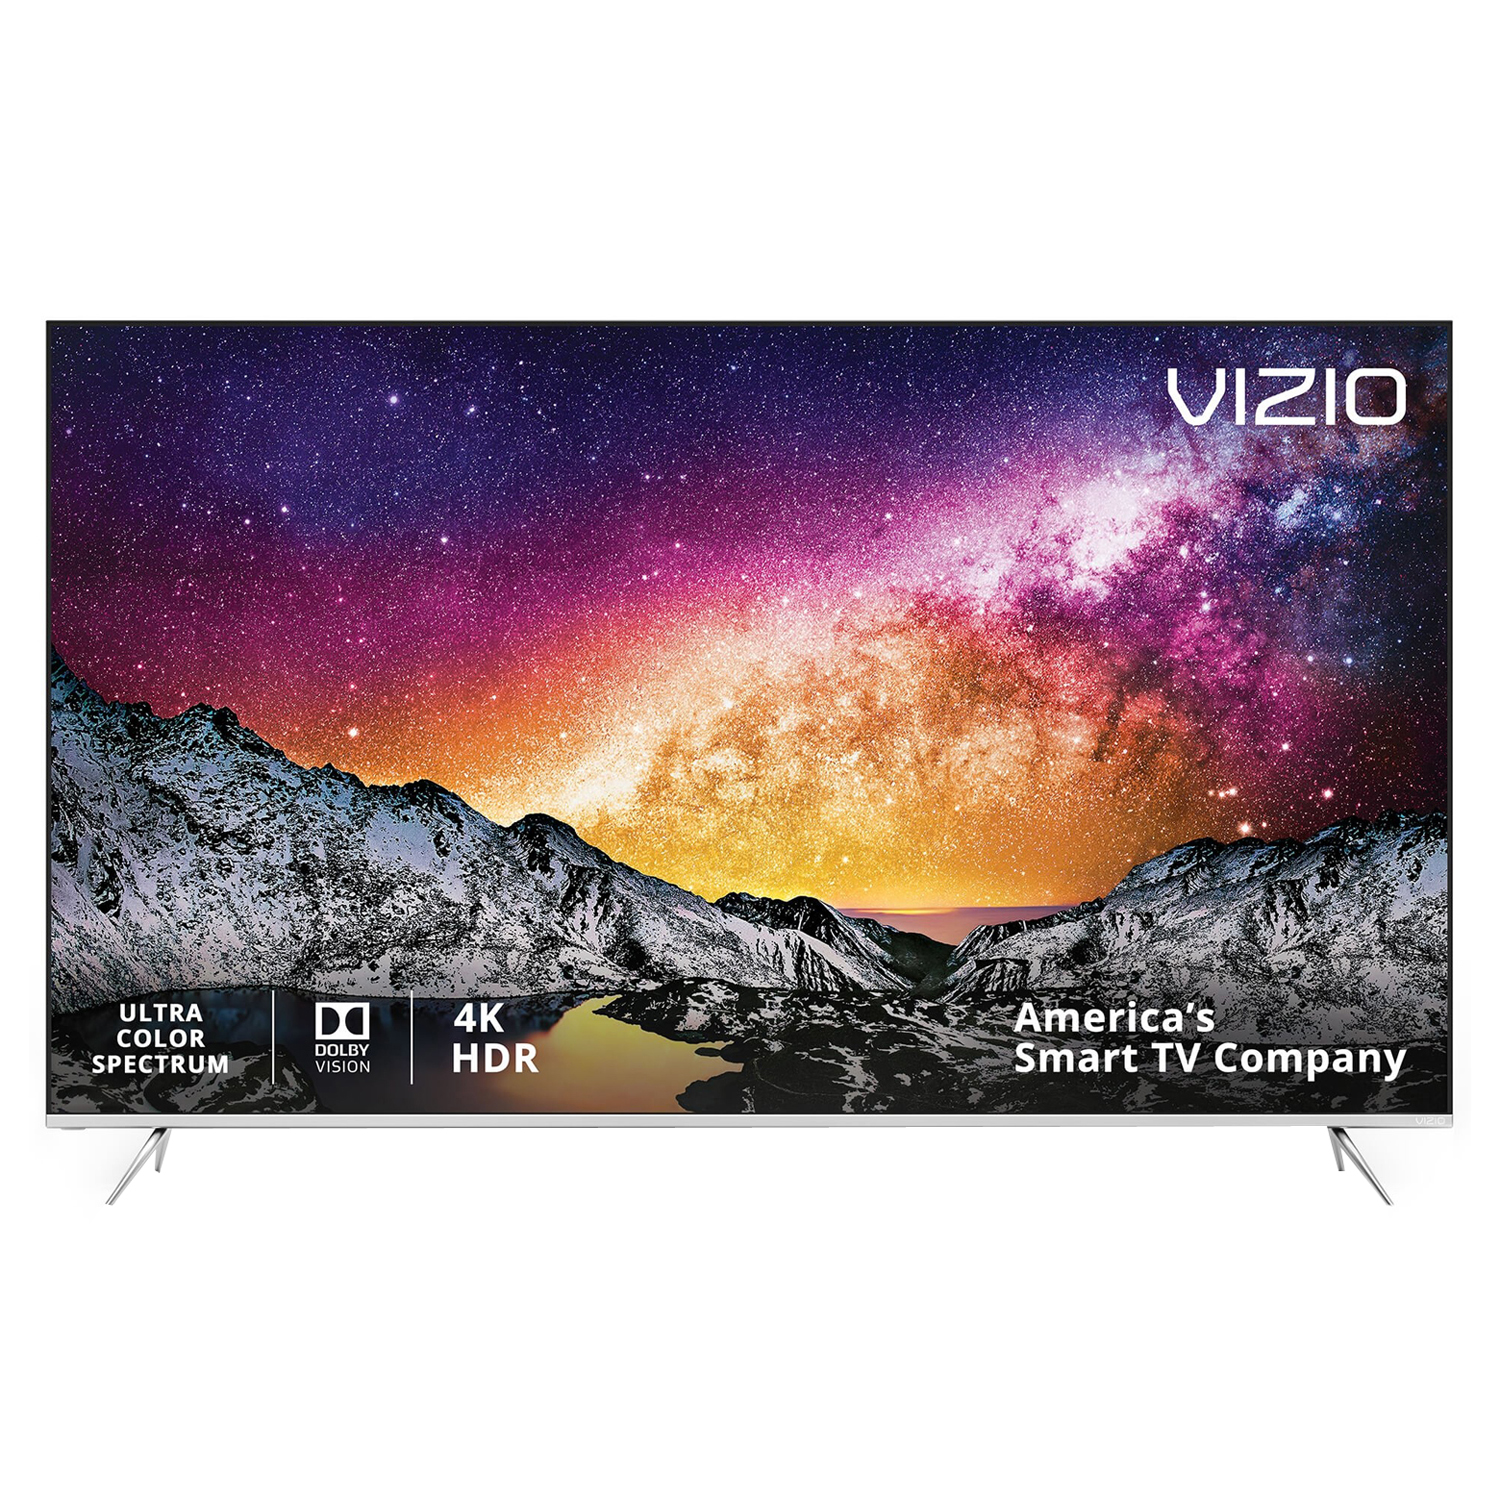 Refurbished Vizio P Series 75 in. 4K HDR Smart LED TV